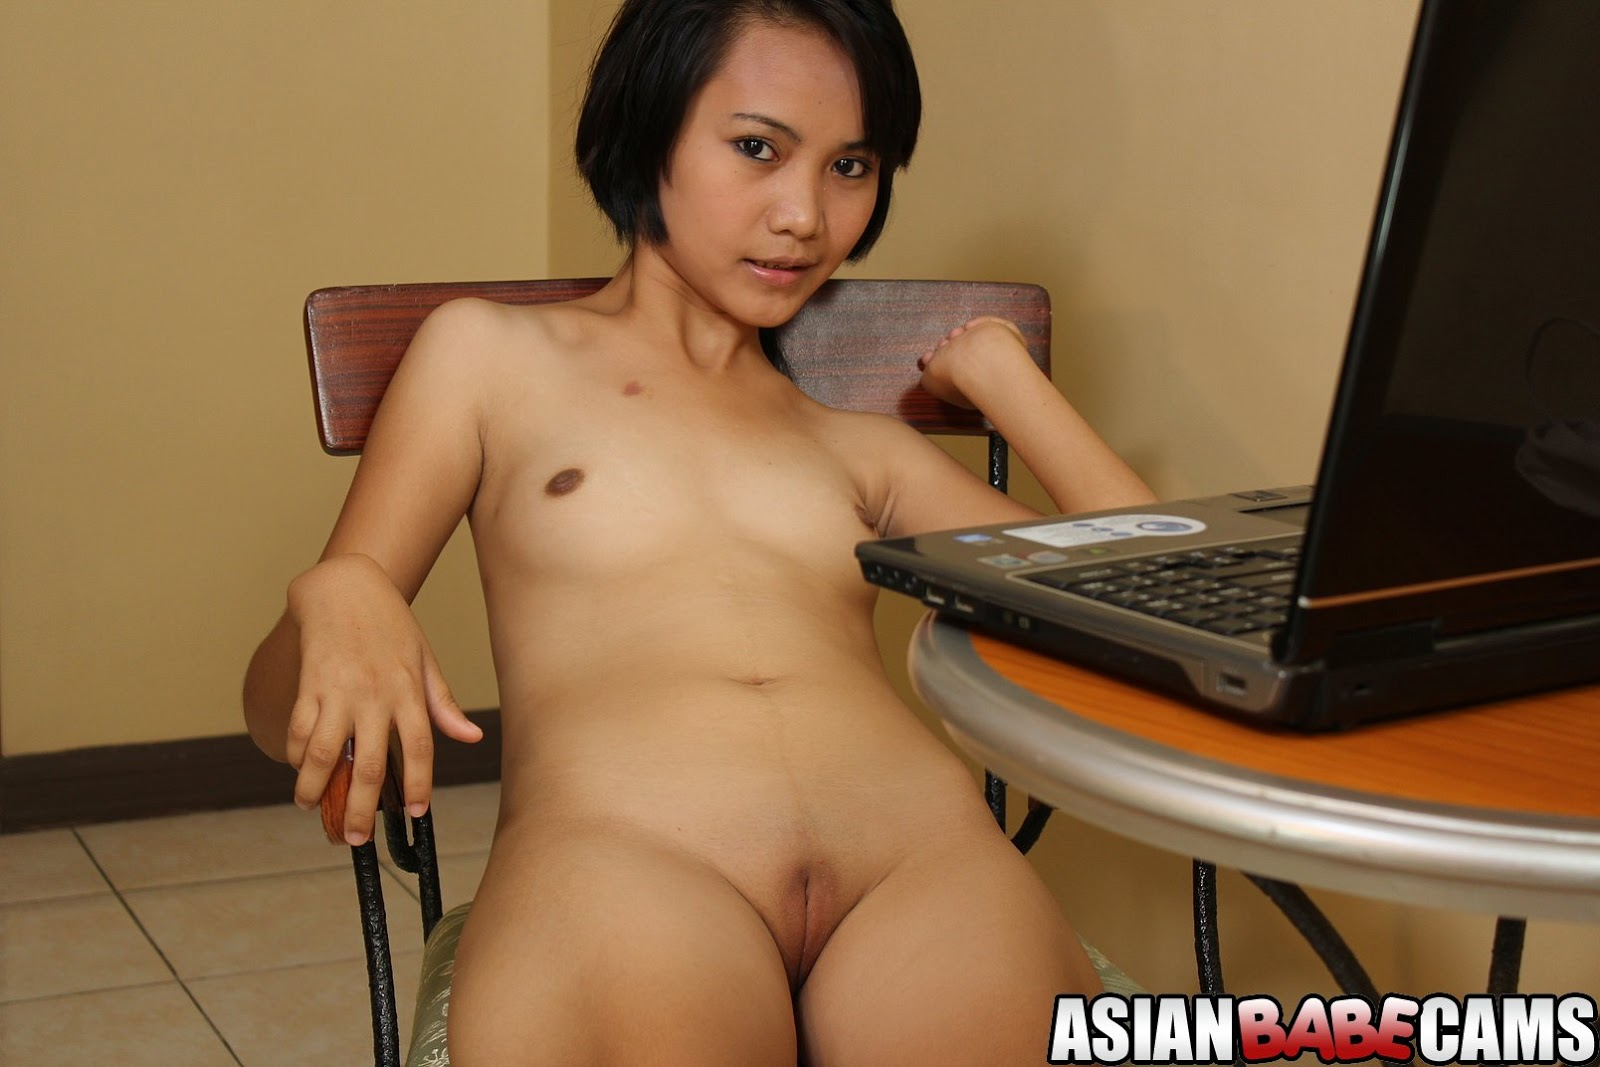 Girl nude thai brown